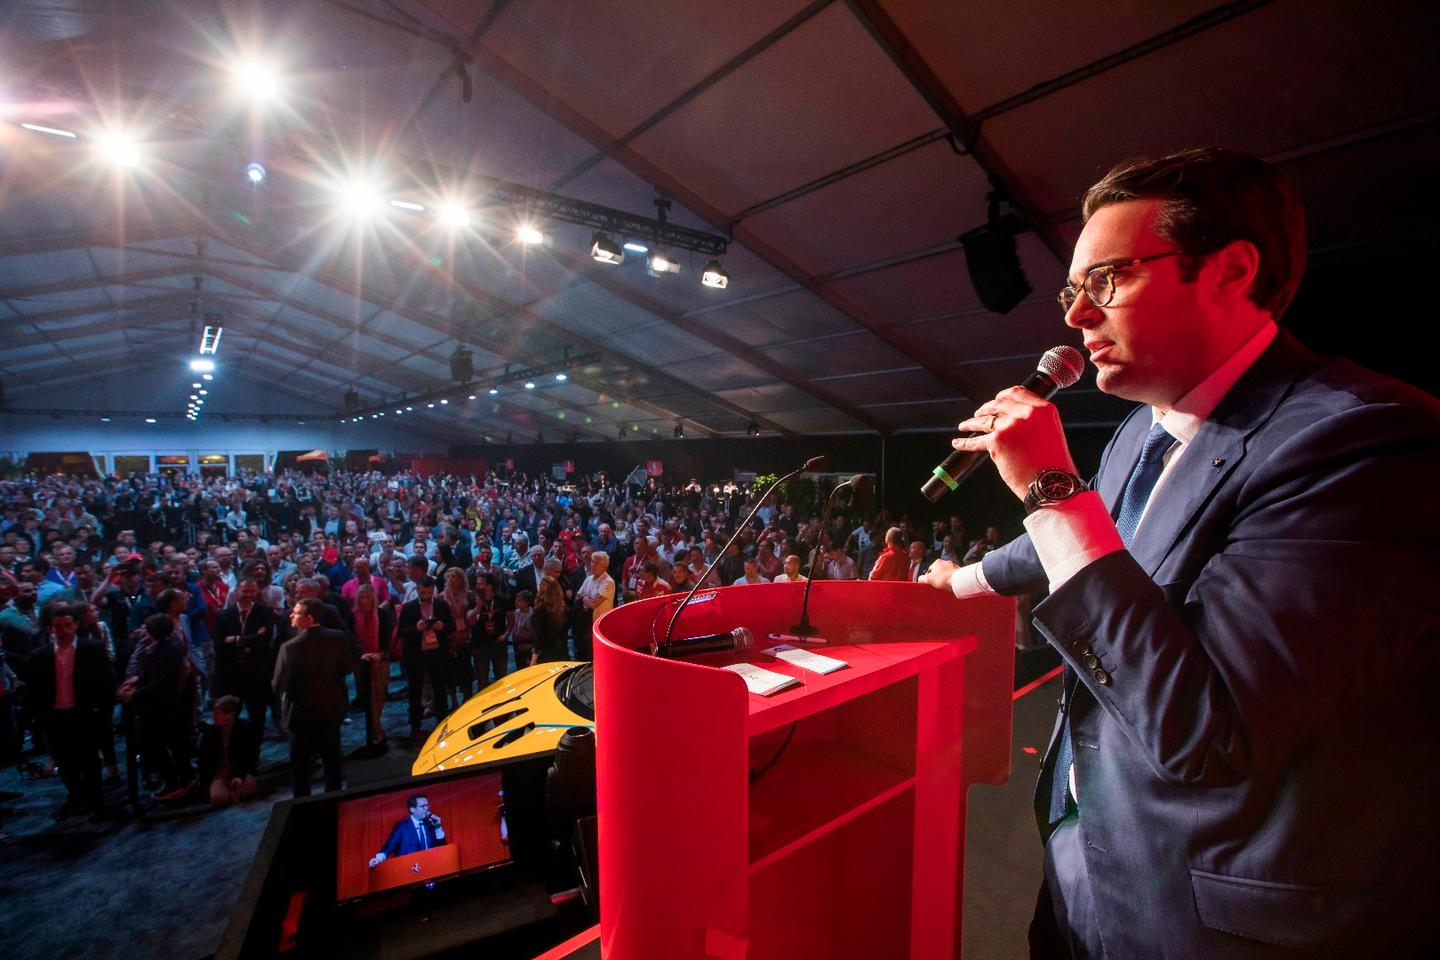 The $7 million fetched by the LaFerrari is a record for a 21st century automobile at a public auction